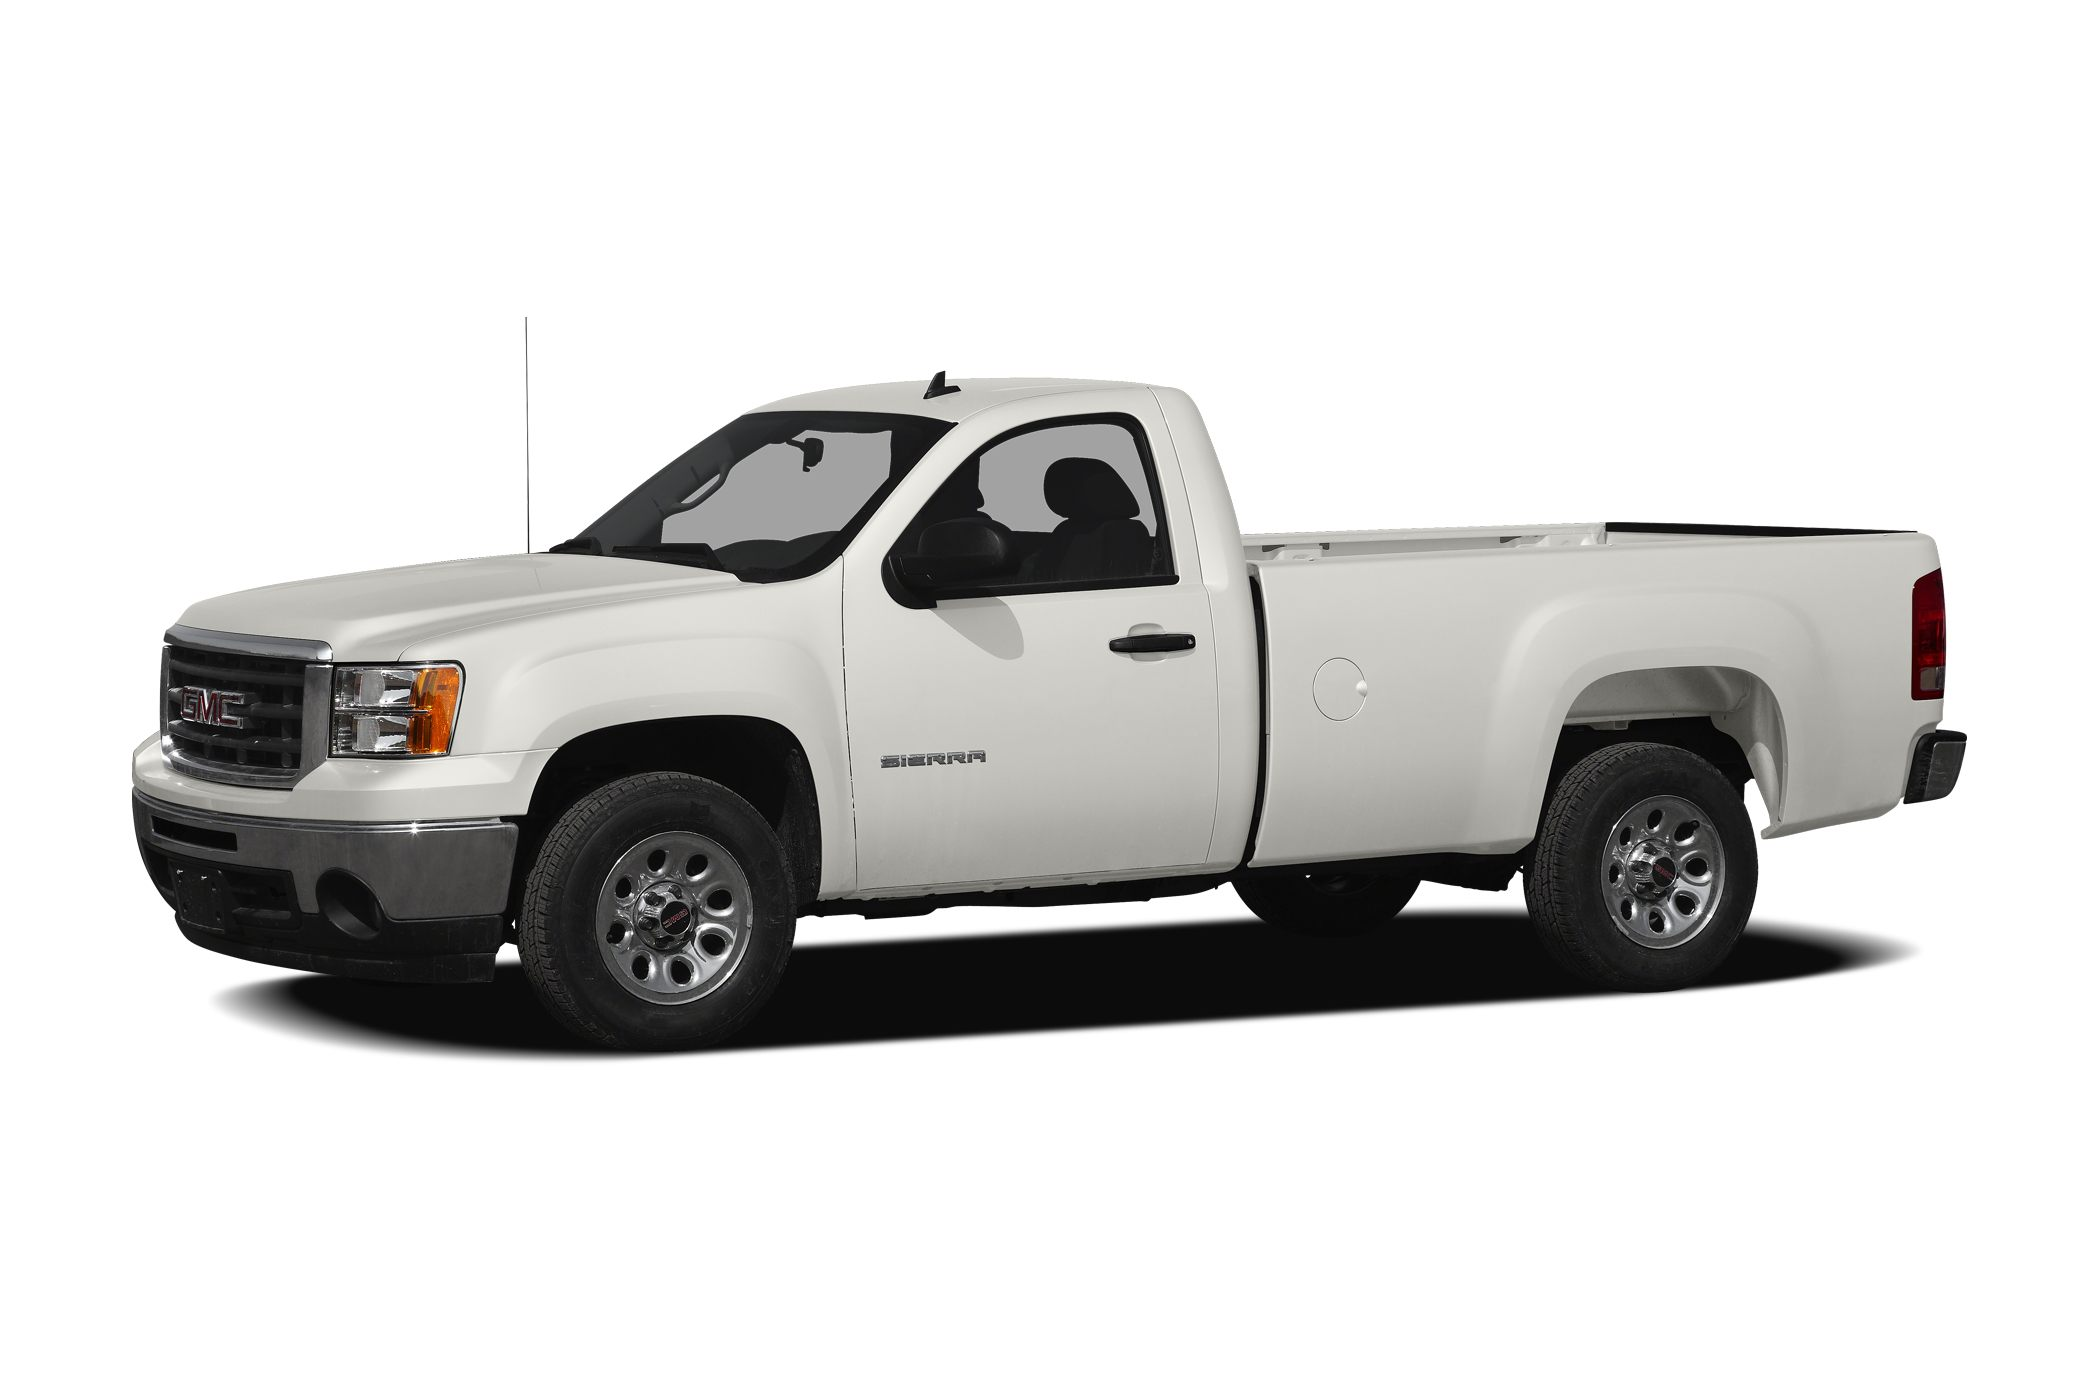 2012 GMC Sierra 1500 SLE Extended Cab Pickup for sale in Tulsa for $0 with 28,391 miles